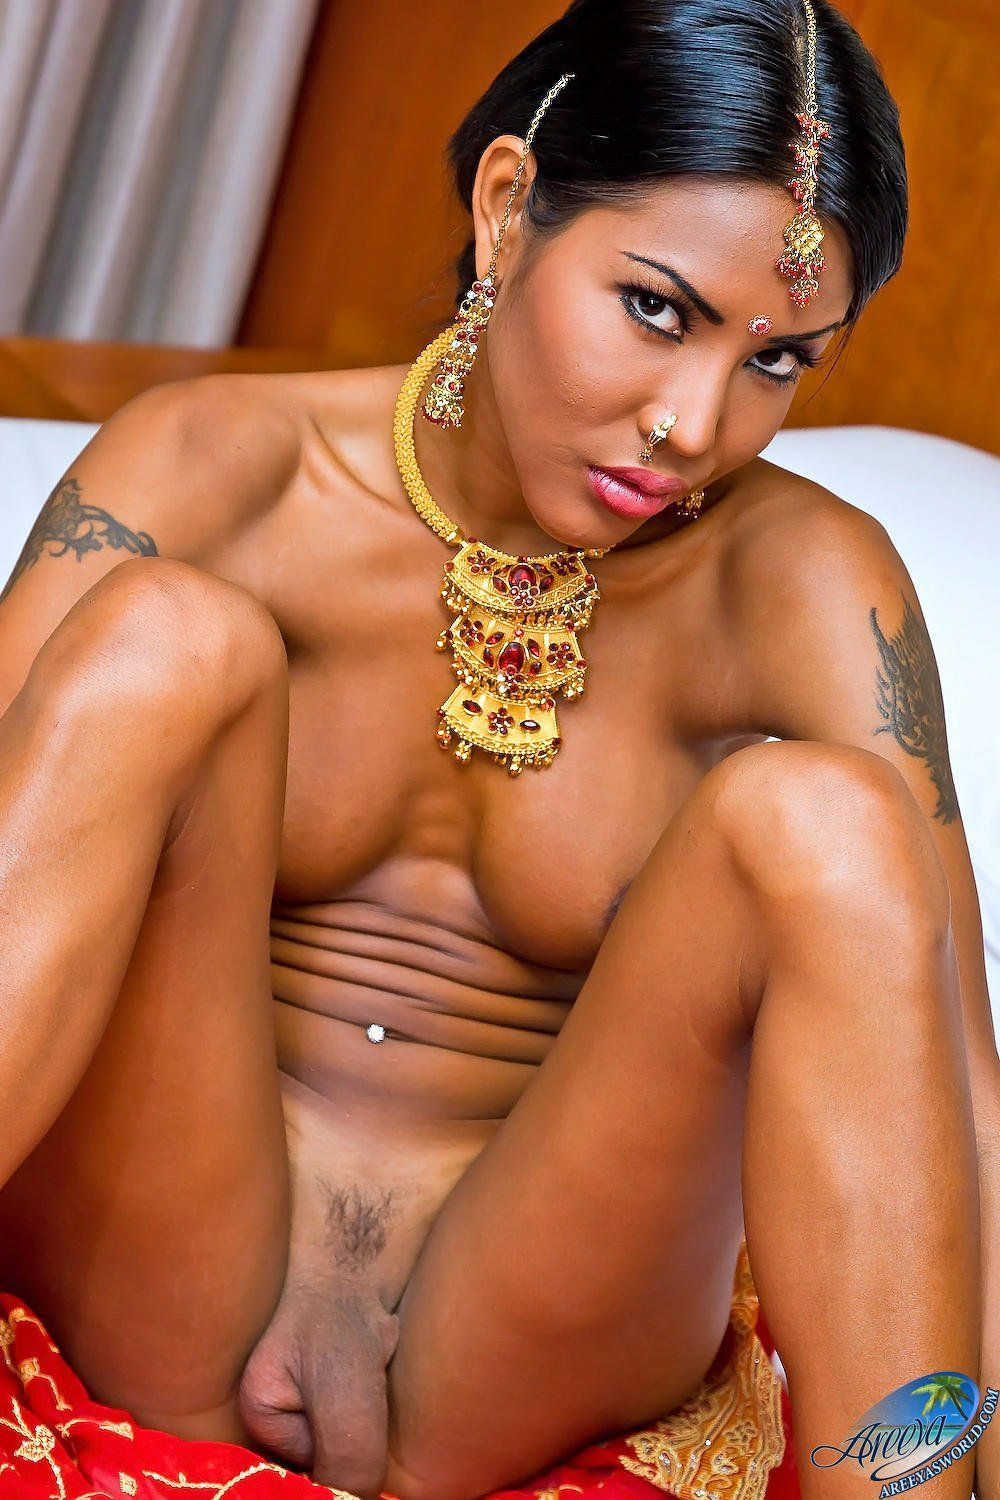 Hottest Shemale Gallery